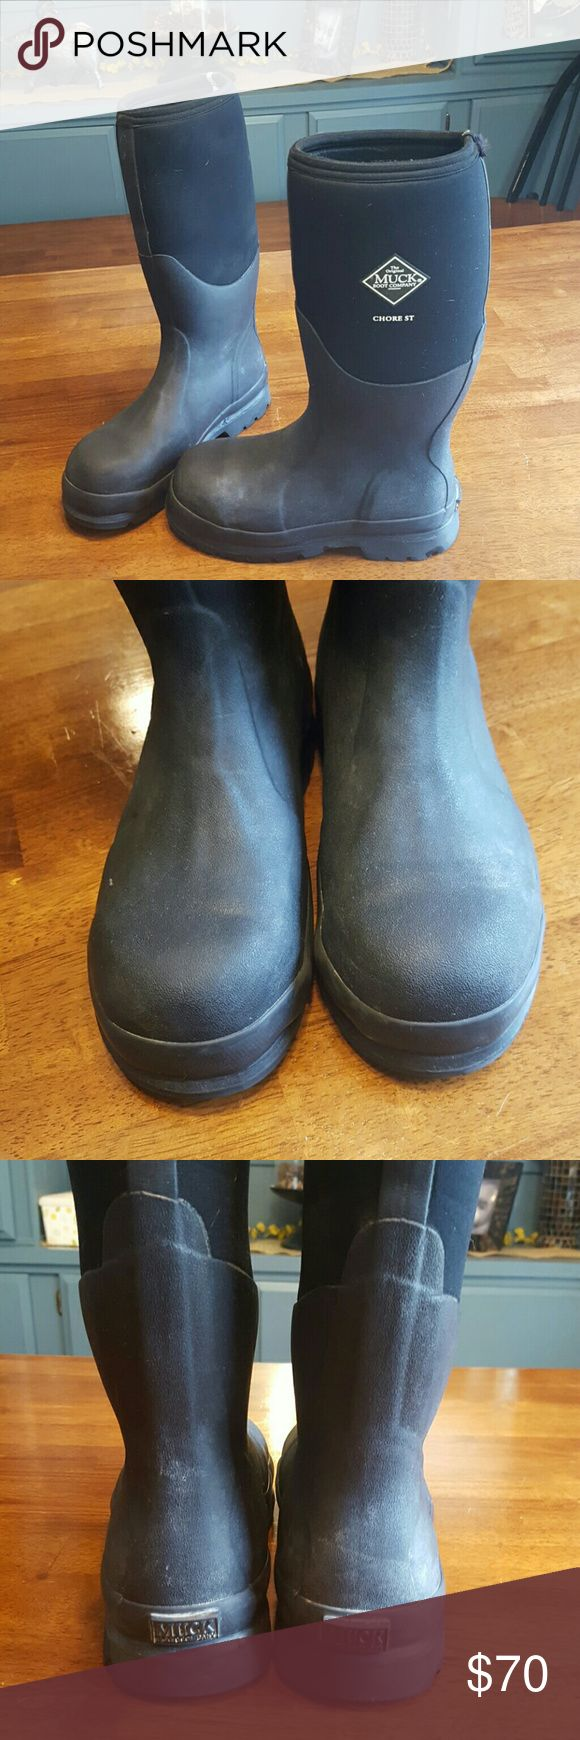 Muck Boots Steel toe Muck Boots. This is your go-to work boot. They'll never let you  down. Only worn for 1 muddy/rainy/snowy season in gas/oil industry. Excellent condition. Women's US size 6/6.5. Men's US size 5/5.5. Big kids size 4/4.5. The Original Muck Boot Company Shoes Rain & Snow Boots